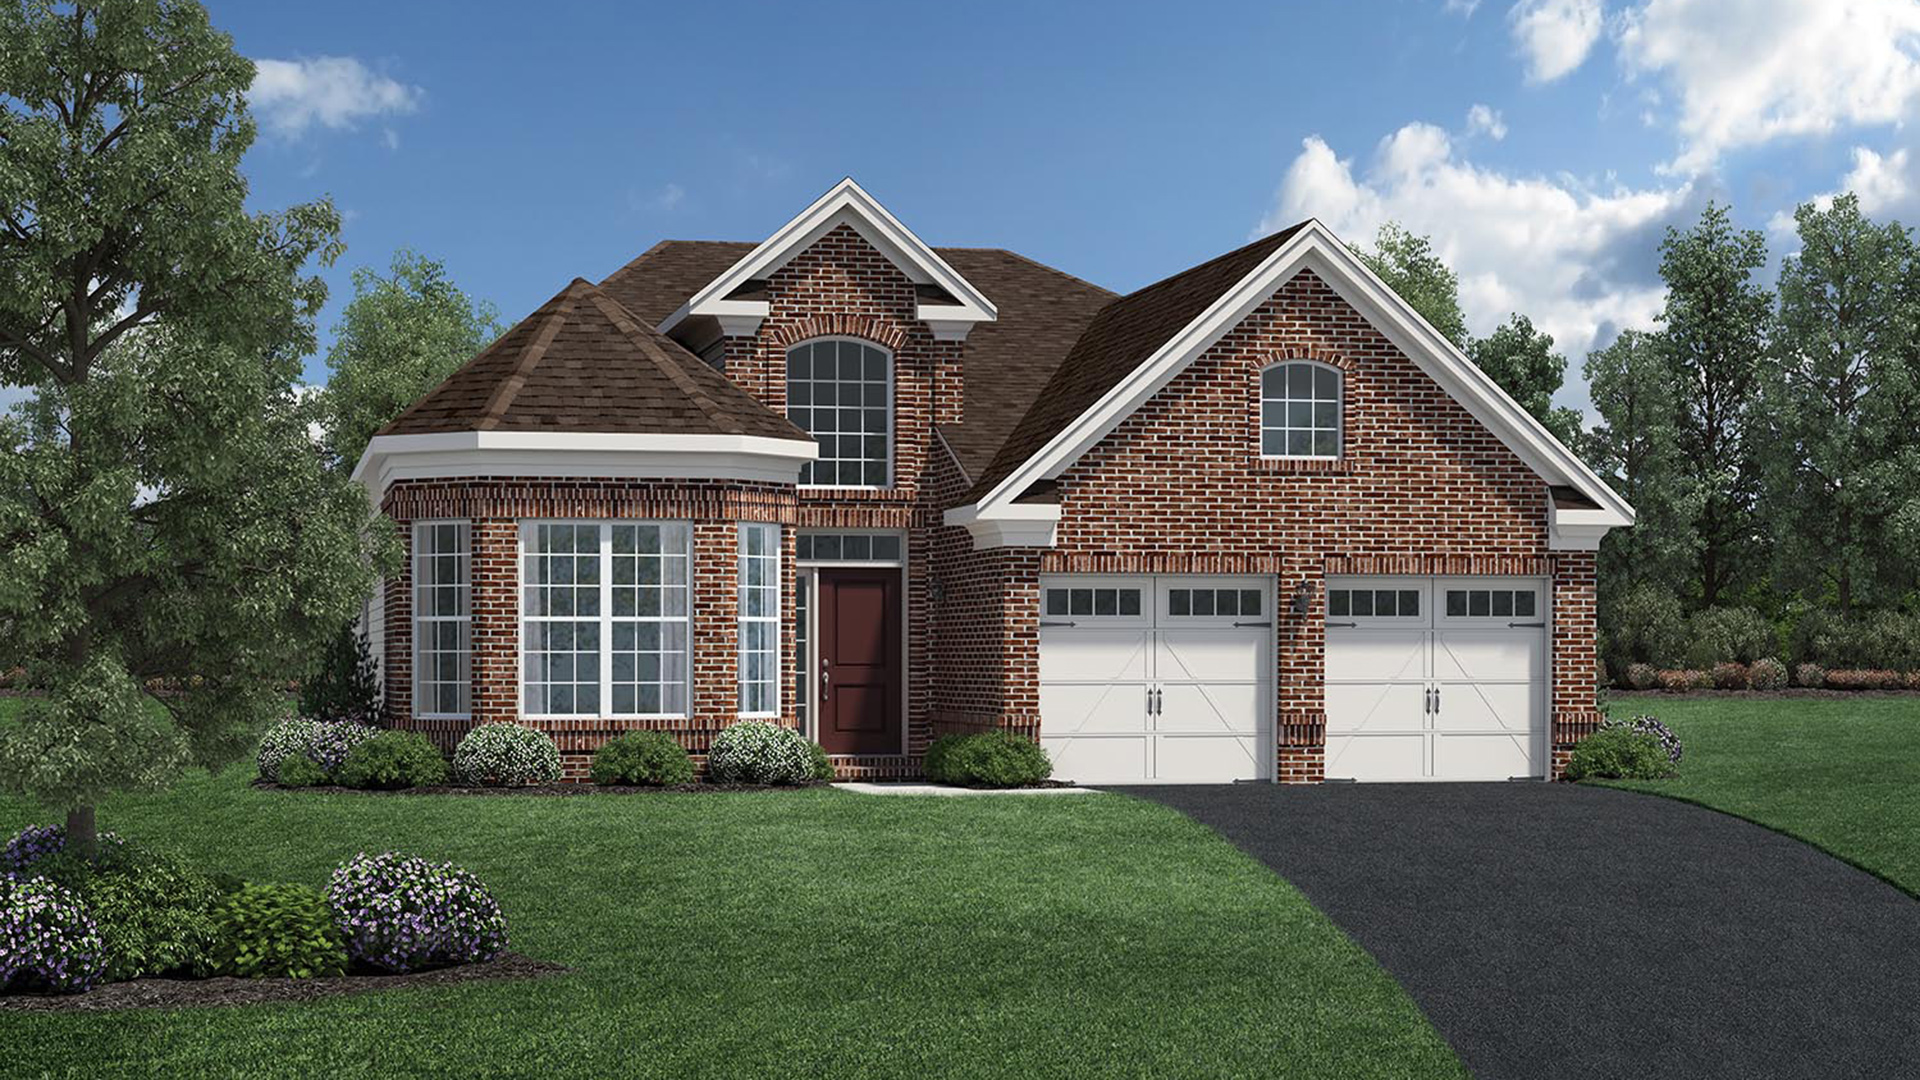 Regency at Trotters Pointe